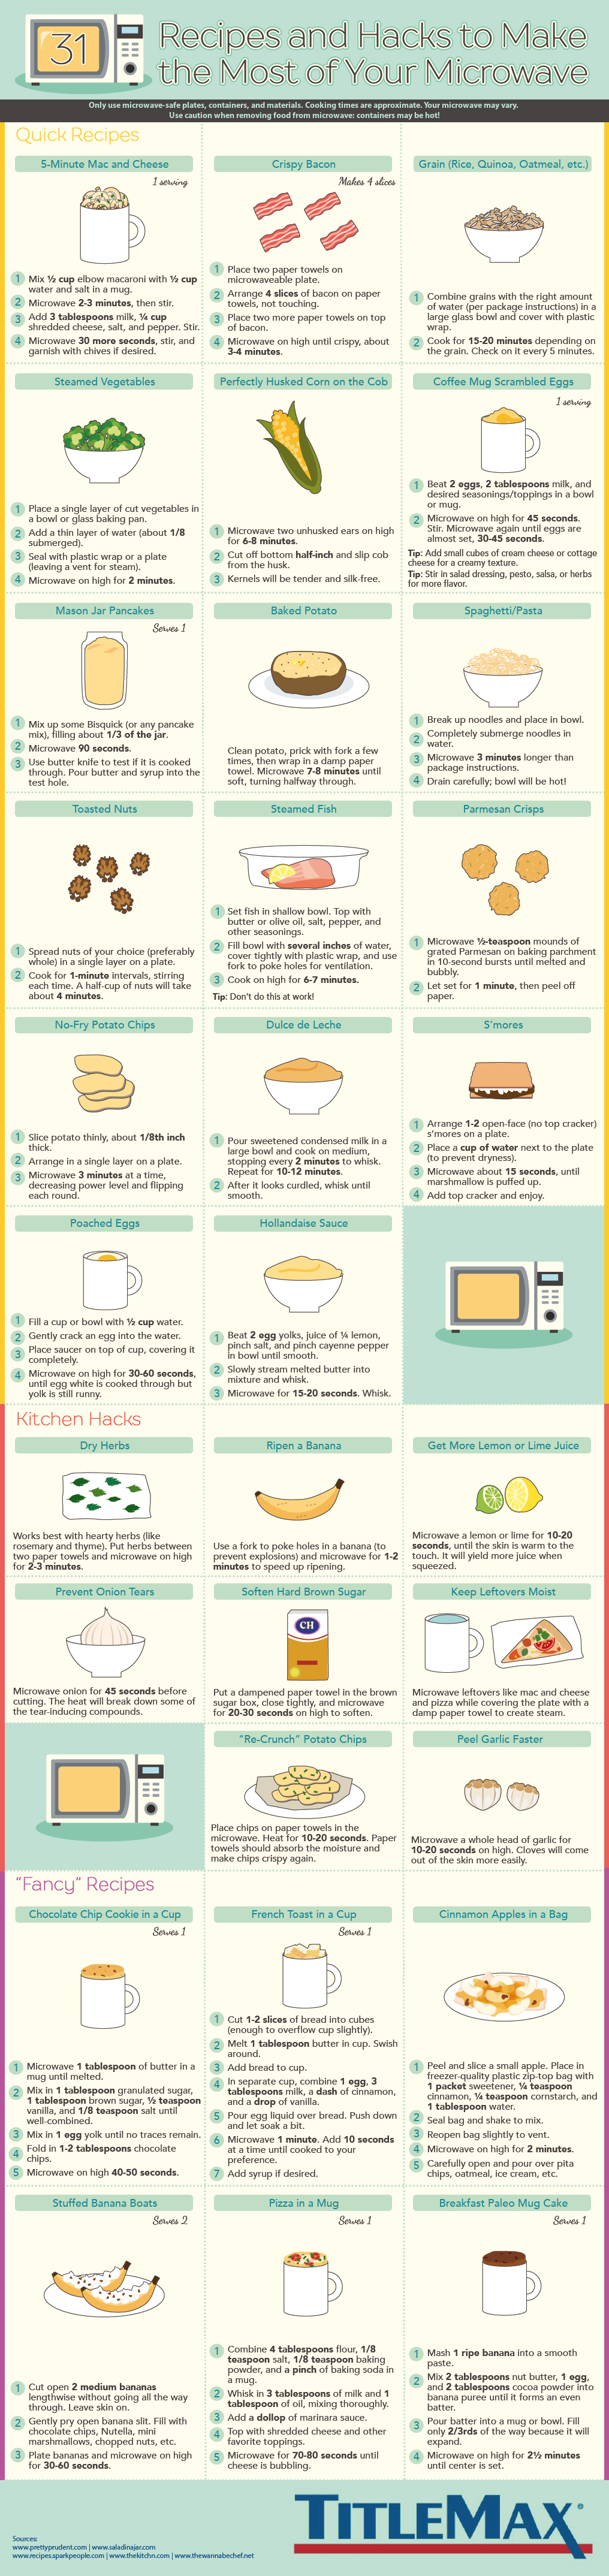 Infographic for 31 Recipes and Hacks to Make the Most of Your Microwave